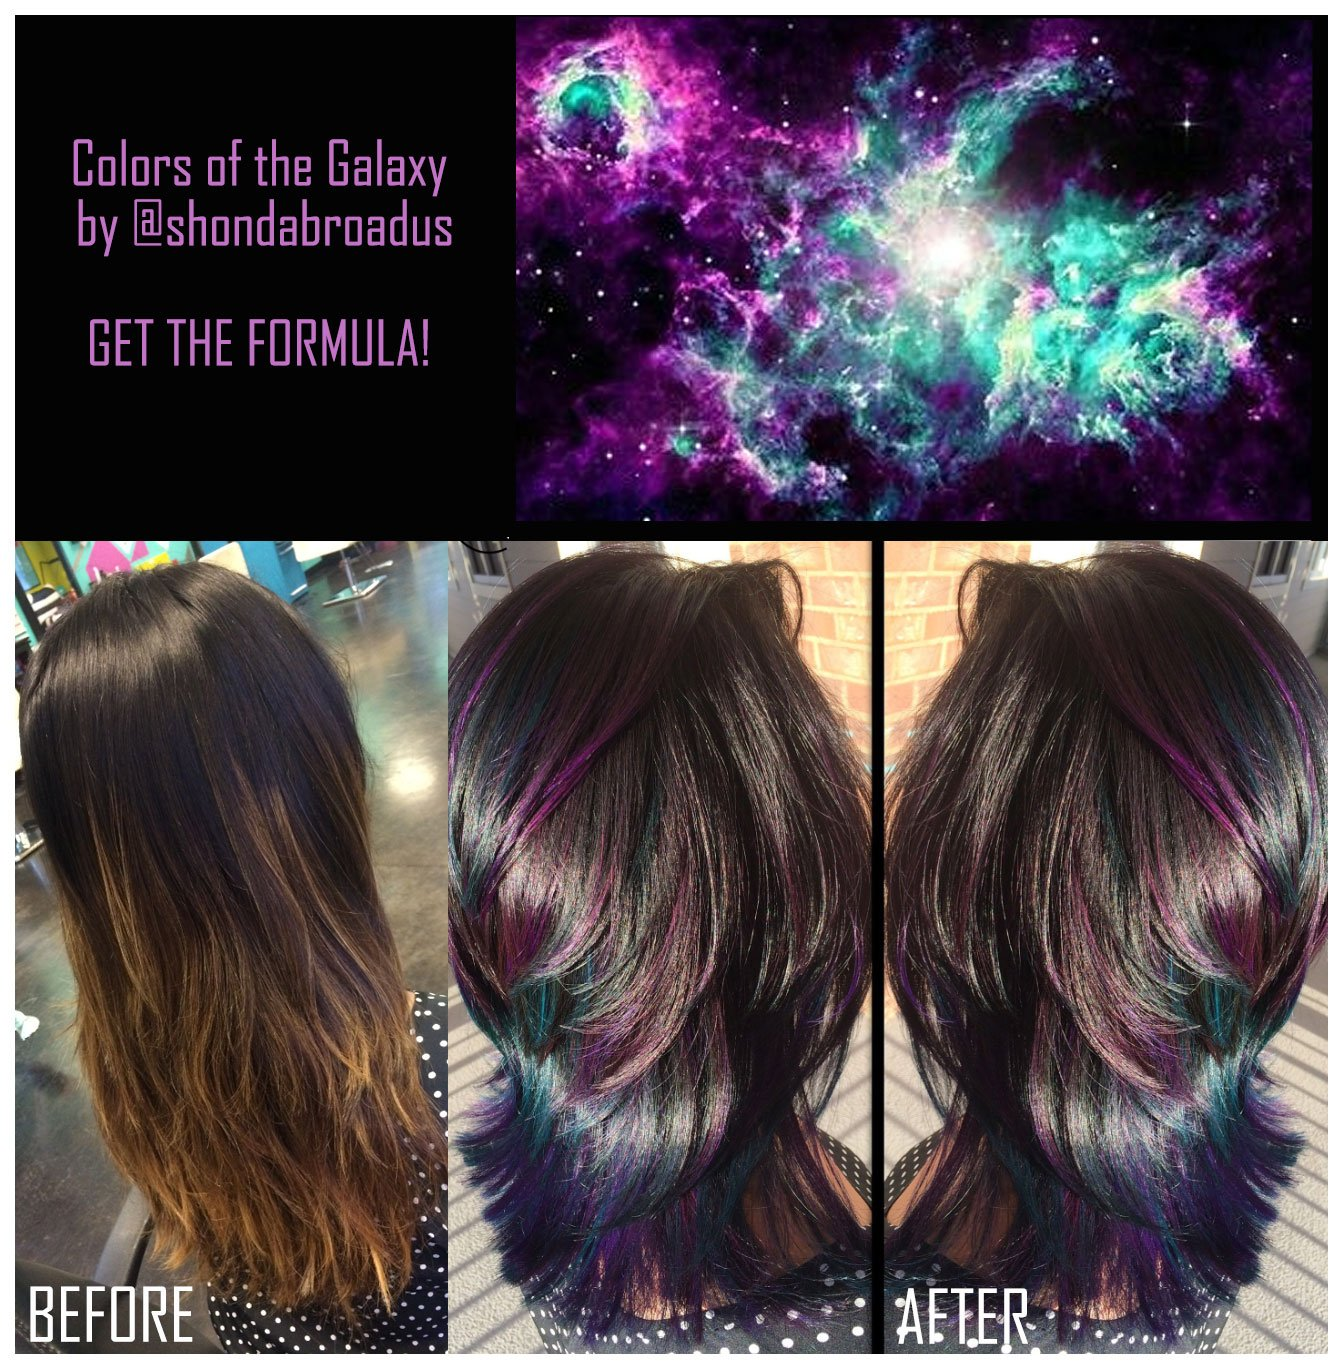 (From left) Before and After. Inspiration: Colors of the Galaxy (pictured) (photo credit: Shonda Broadus) Shonda Broadus